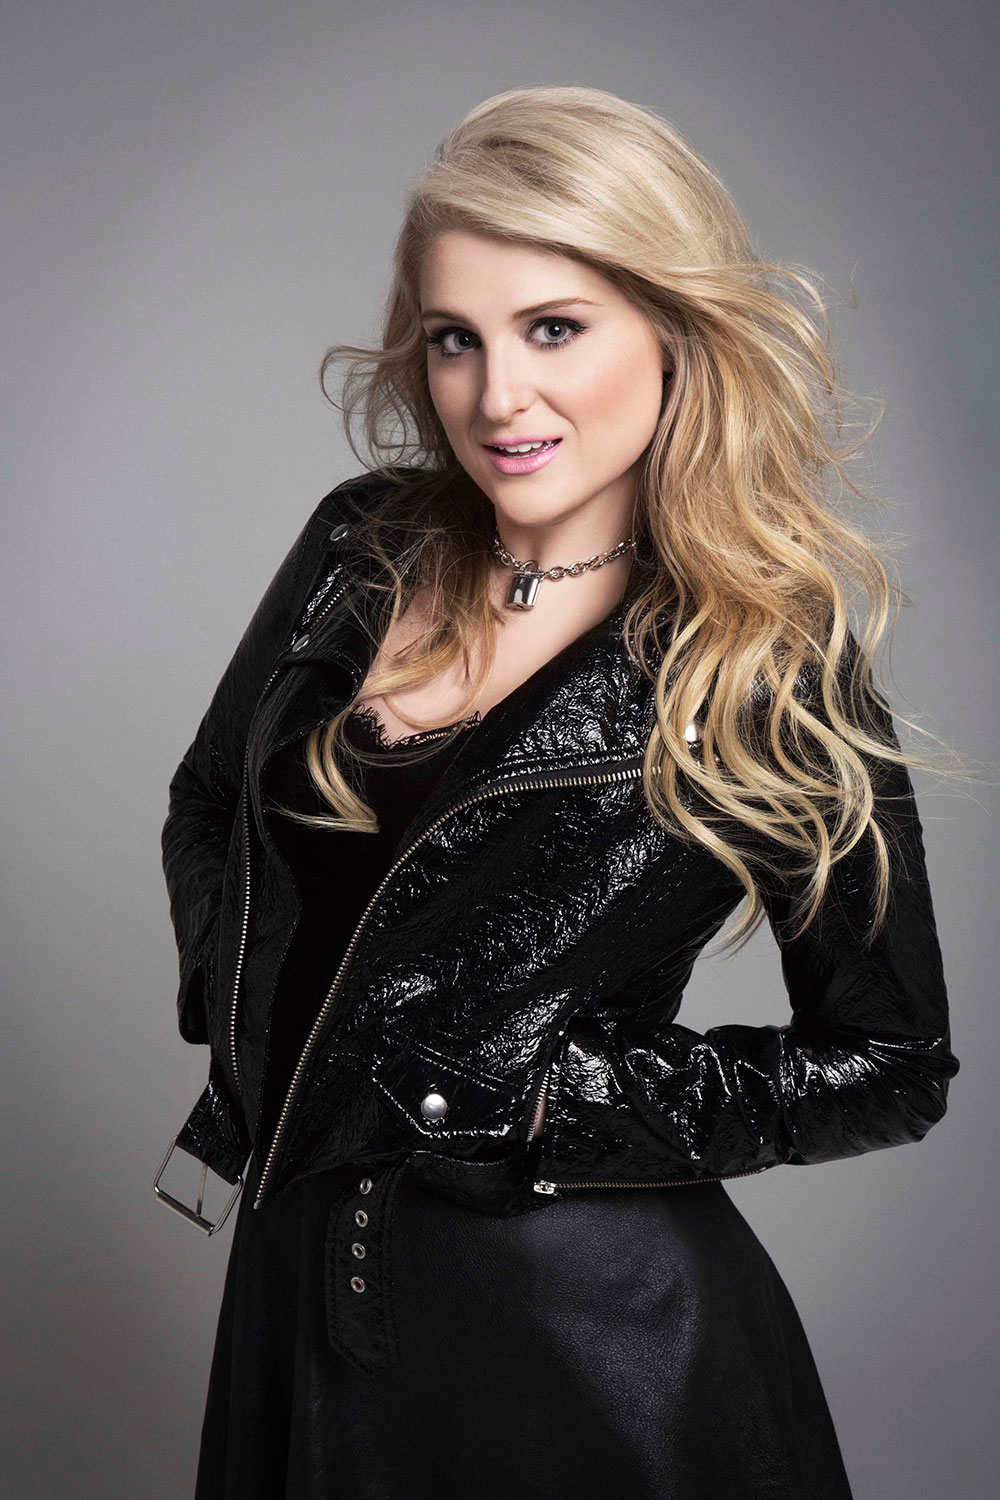 MeghanTrainor_Rolling Stone Photo